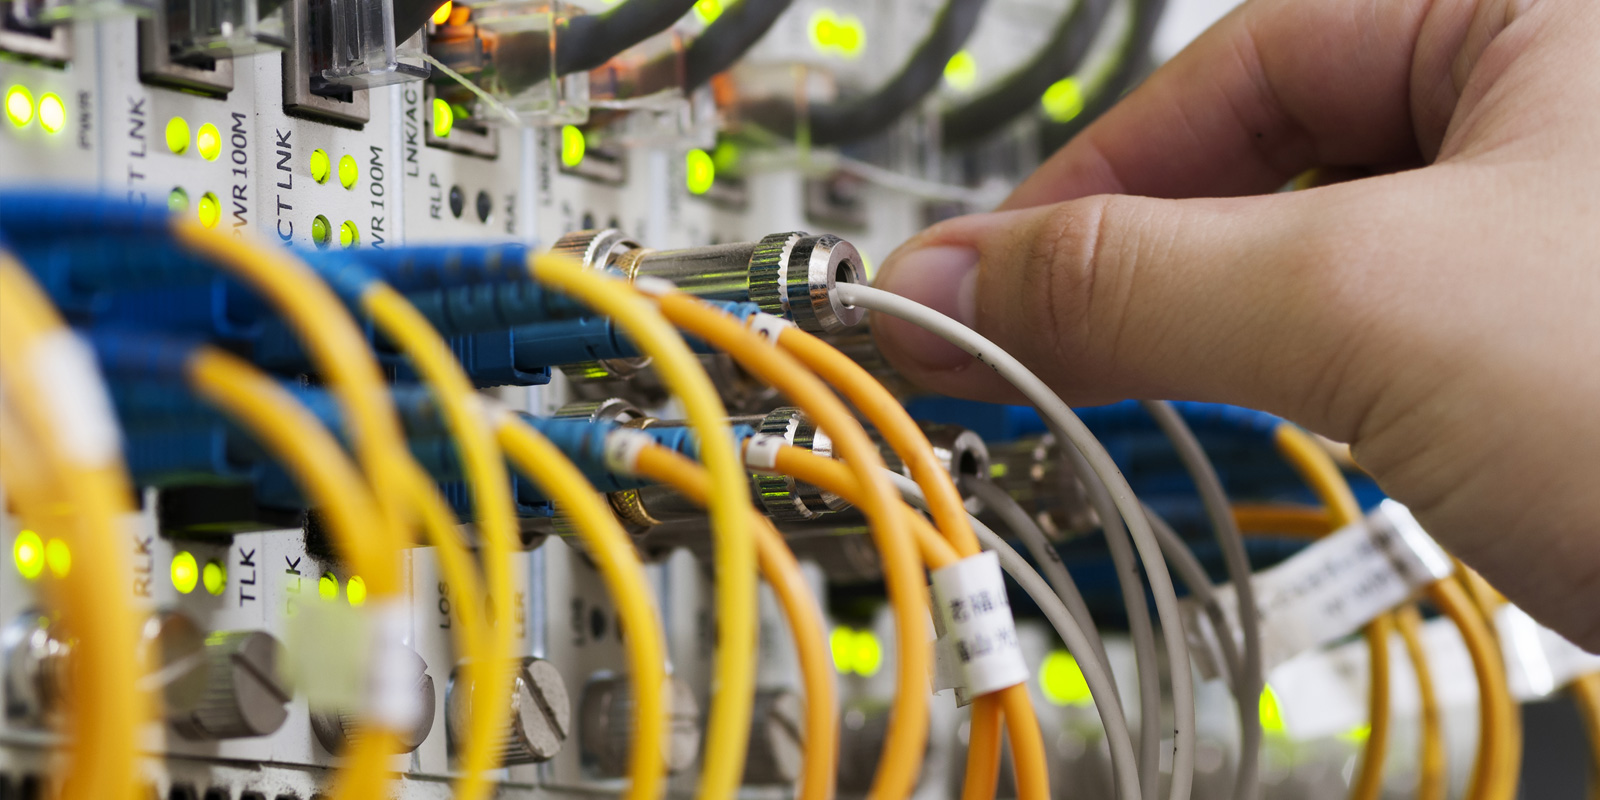 Orangewire Systems What Is A Modular Wiring System Optimized And Efficient Tools Are Based On Scalable Approach To Alm That